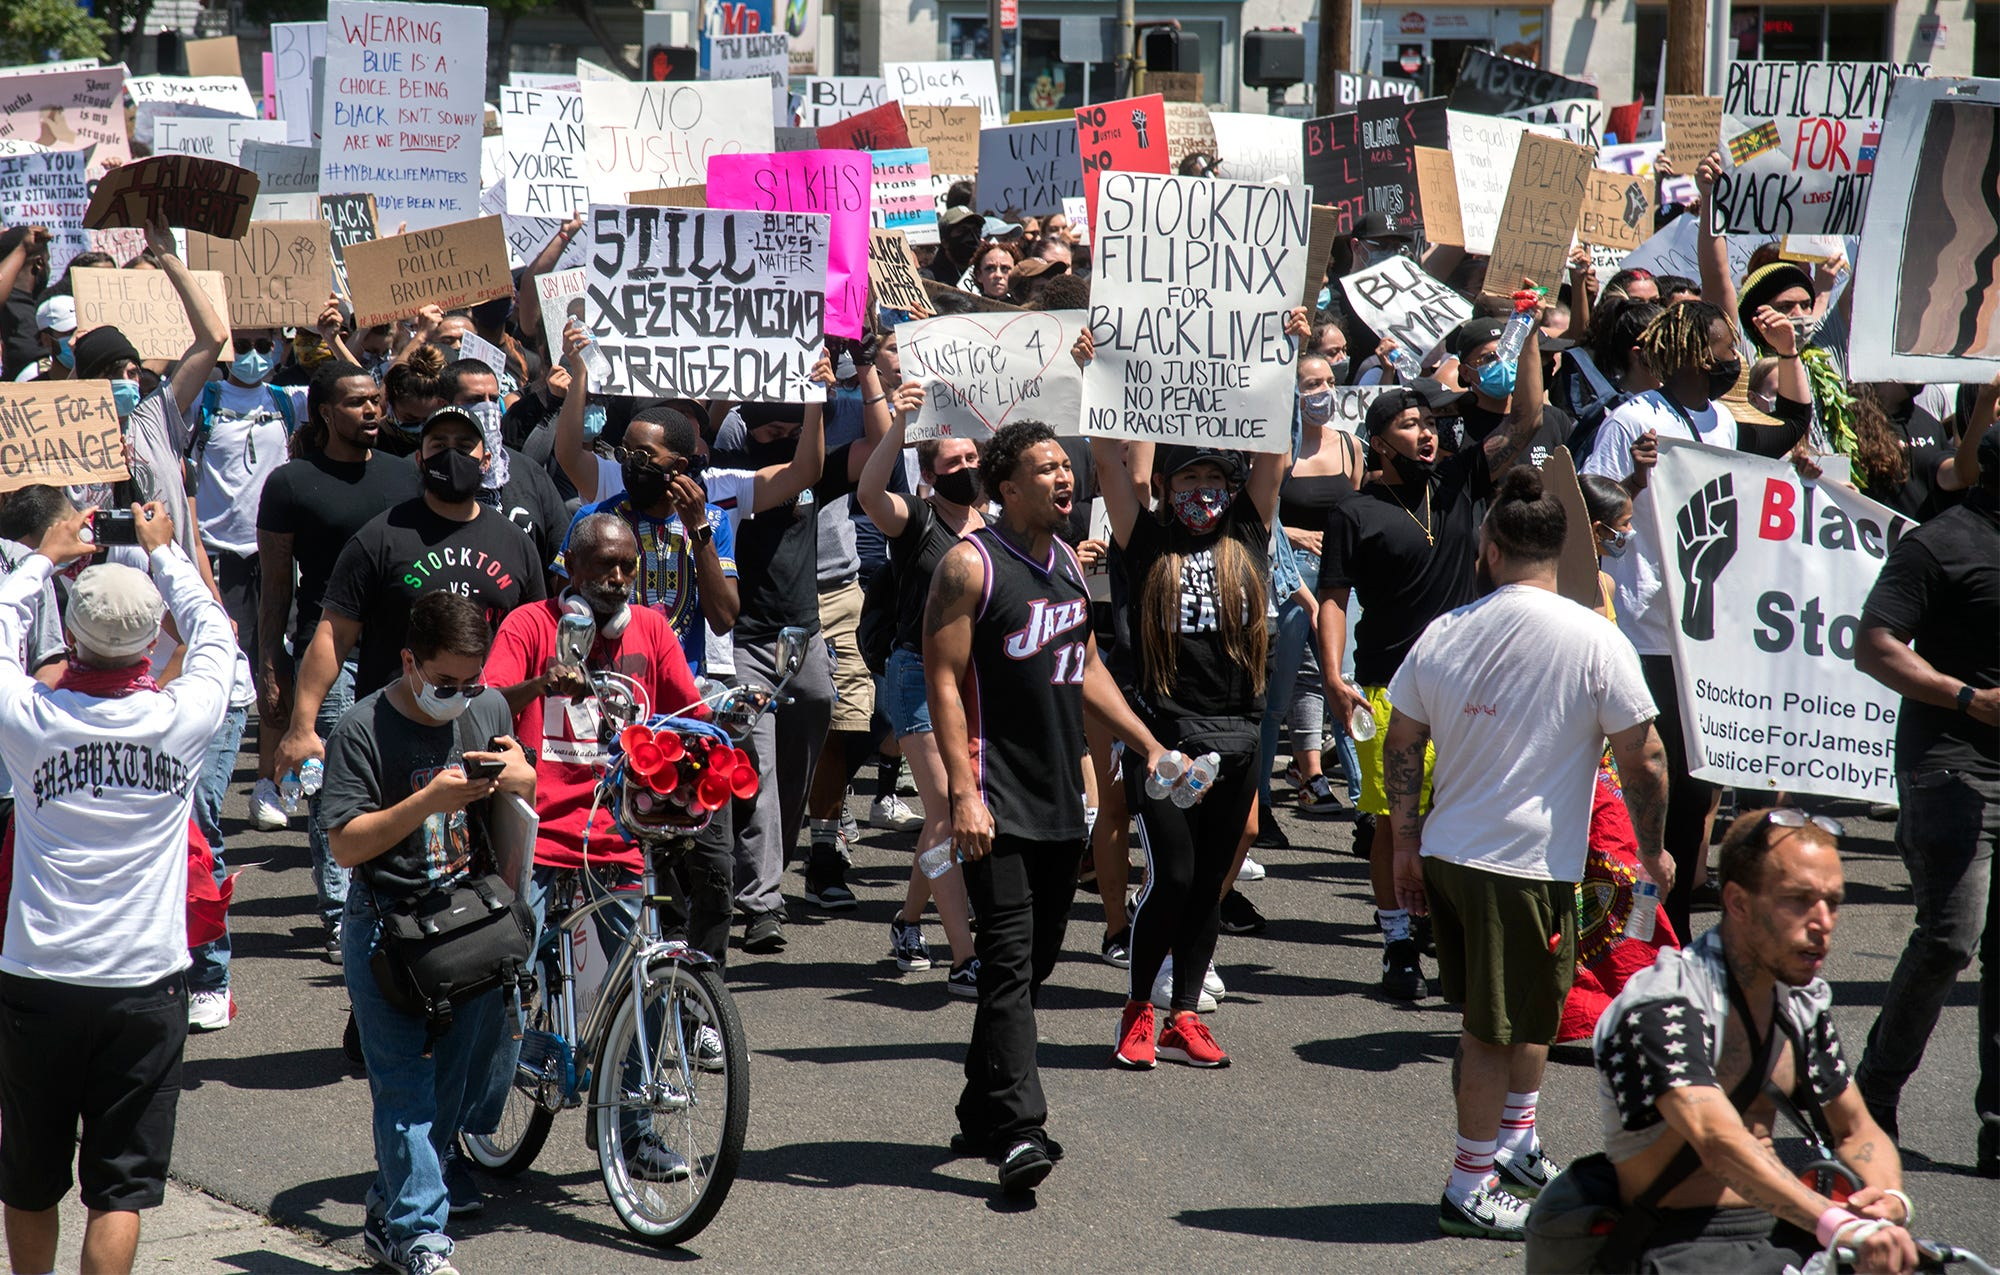 Protesters march down Center Street in downtown Stockton to protest the killing of George Floyd.